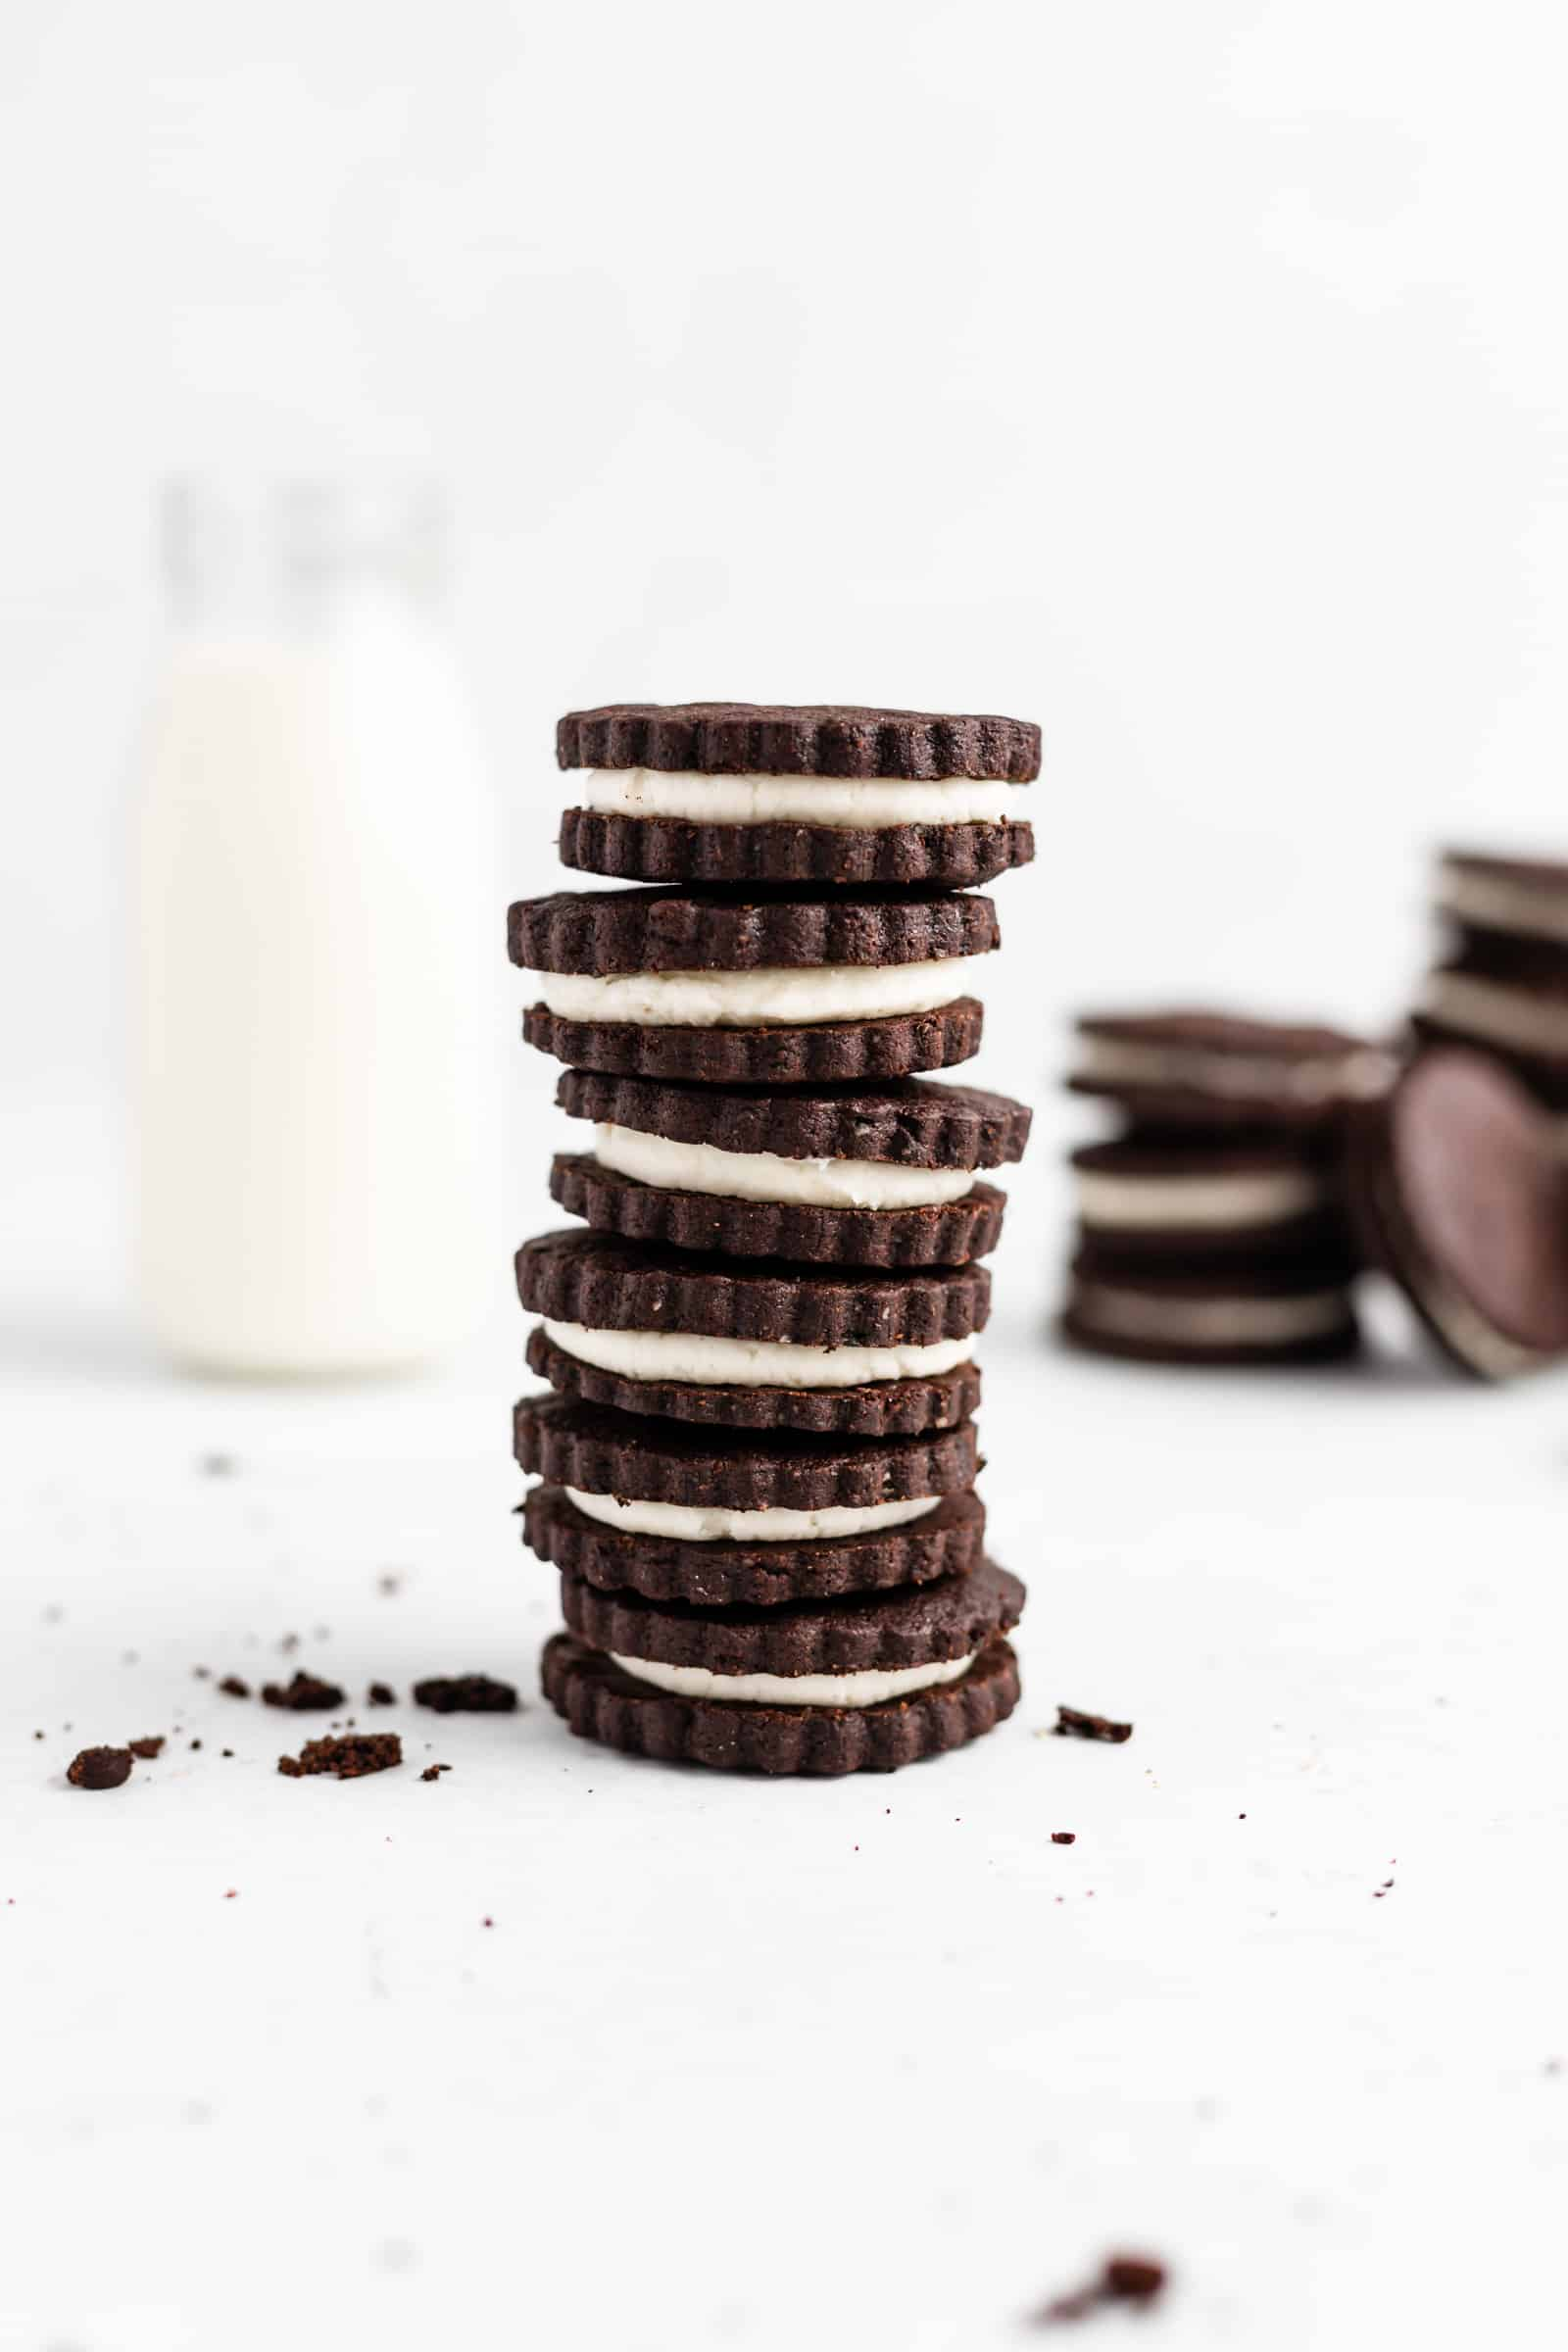 Easy and tasty recipe for homemade Oreos.